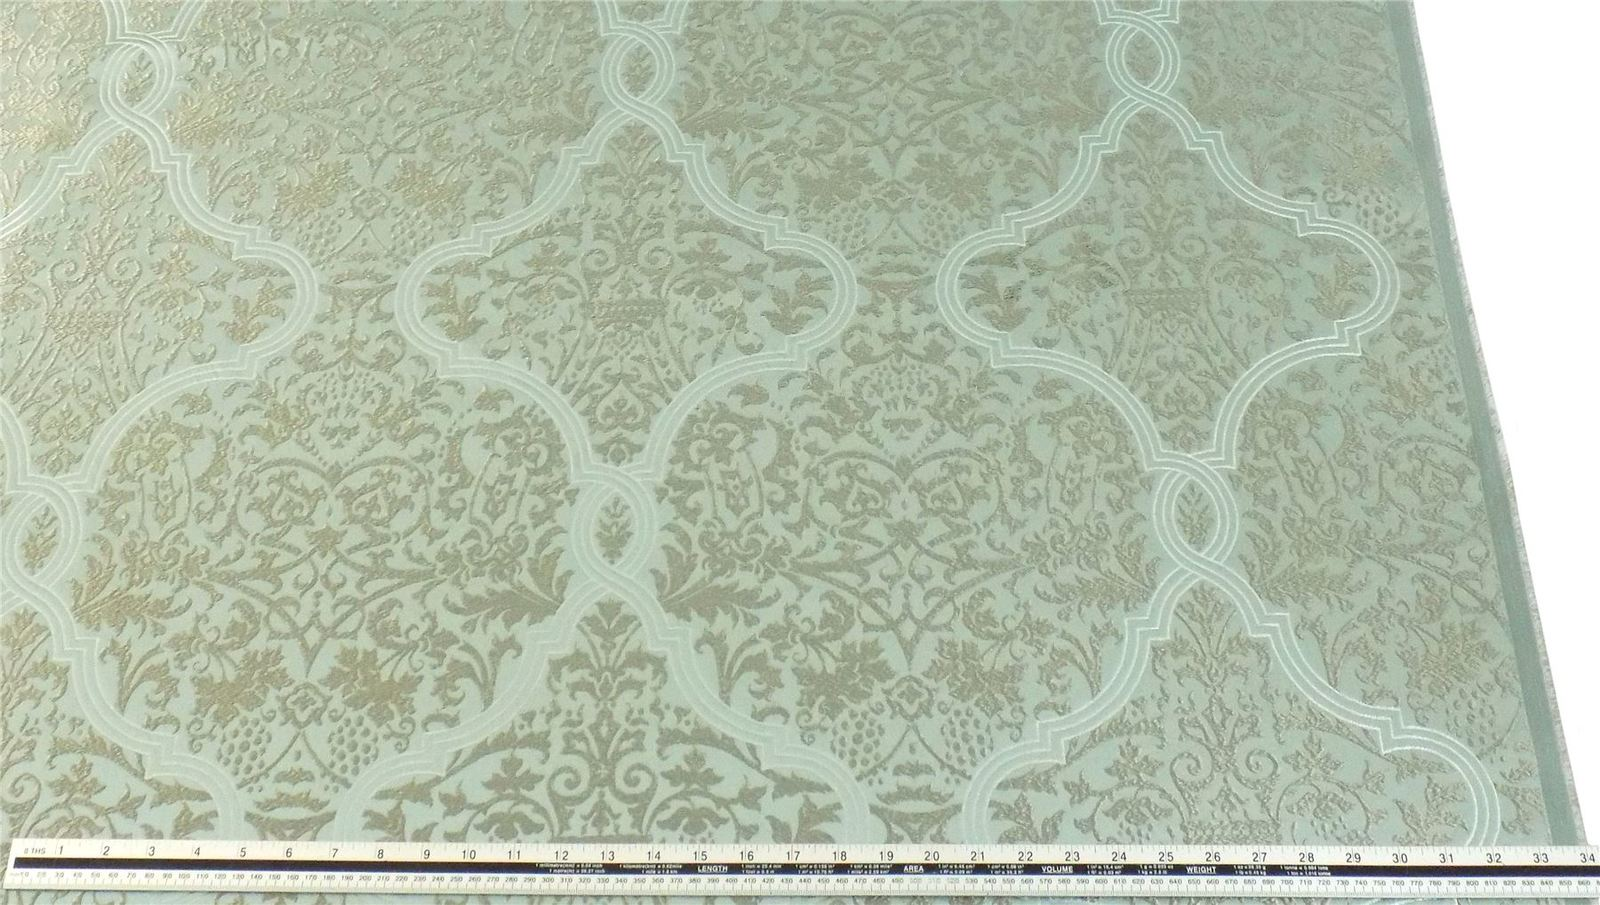 Slub Effect Duck Egg Blue Silver Embroidered Damask Fabric Material *2 Sizes*